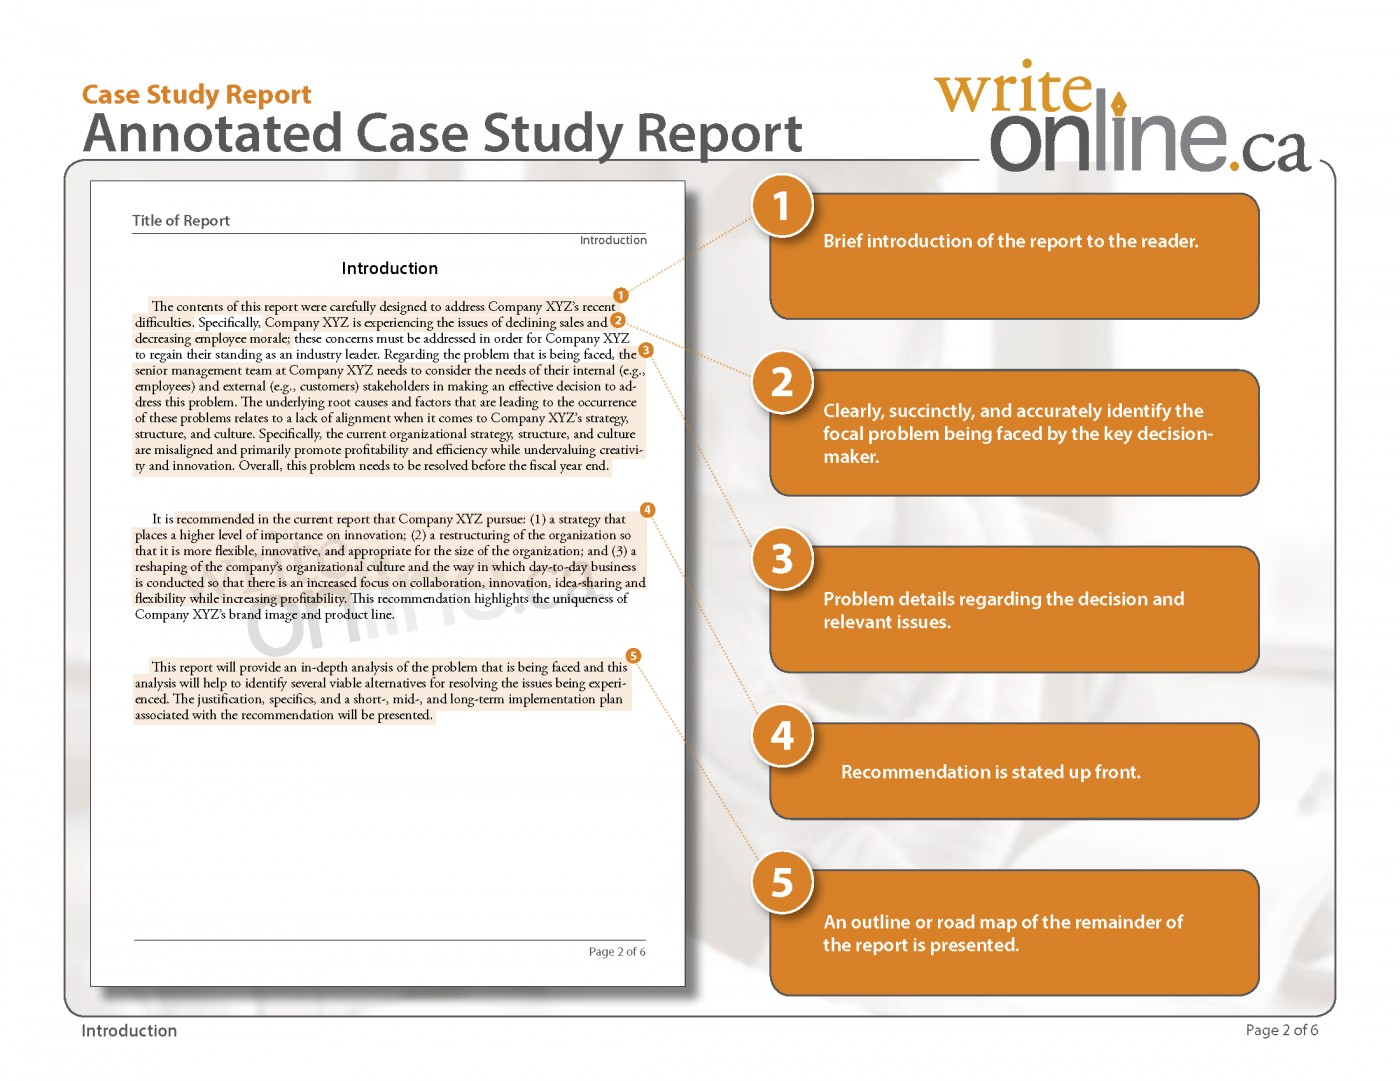 015 Casestudy Annotatedfull Page 2 Research Paper Parts Of Staggering Pdf And Its Definition Quantitative 1400